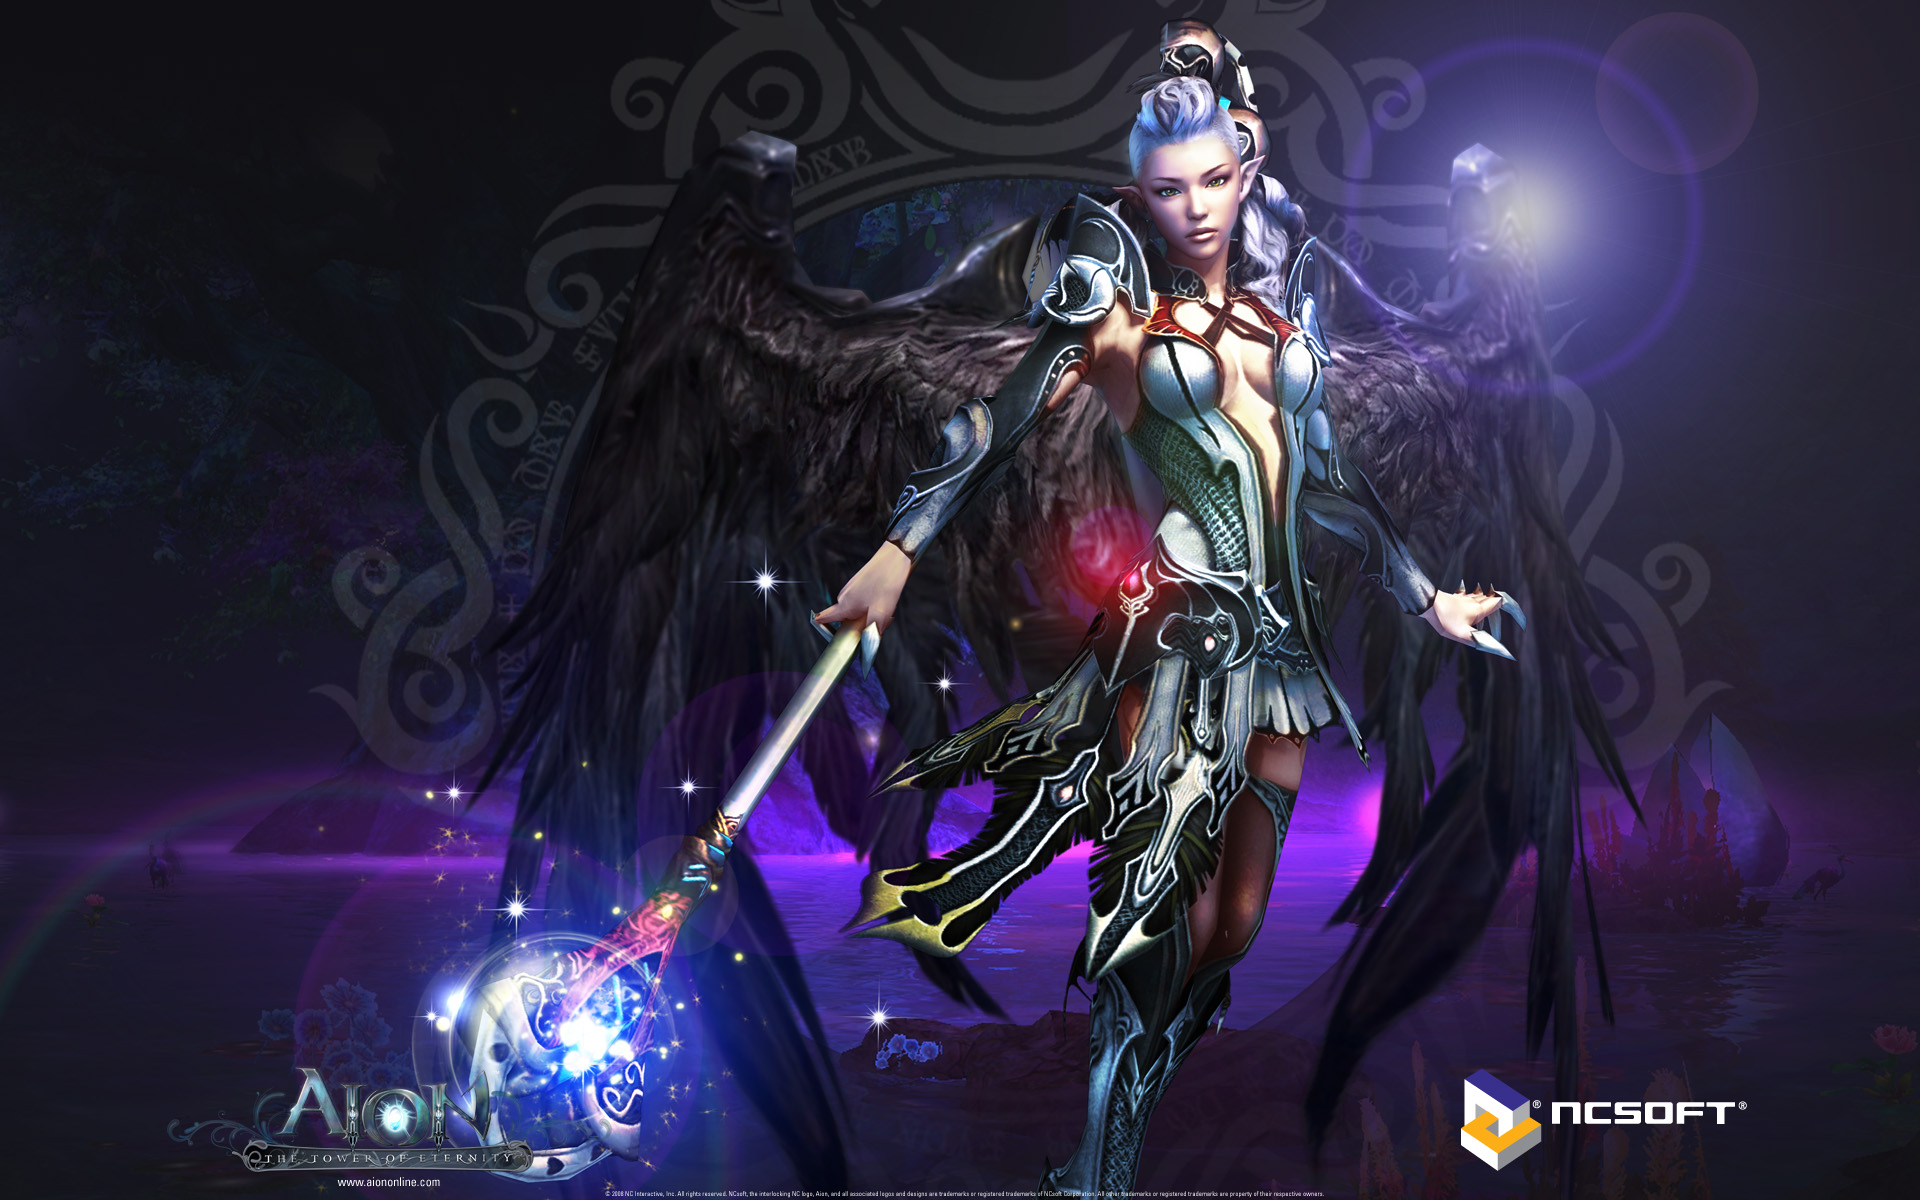 Wallpaper   AION GamerDB 1920x1200